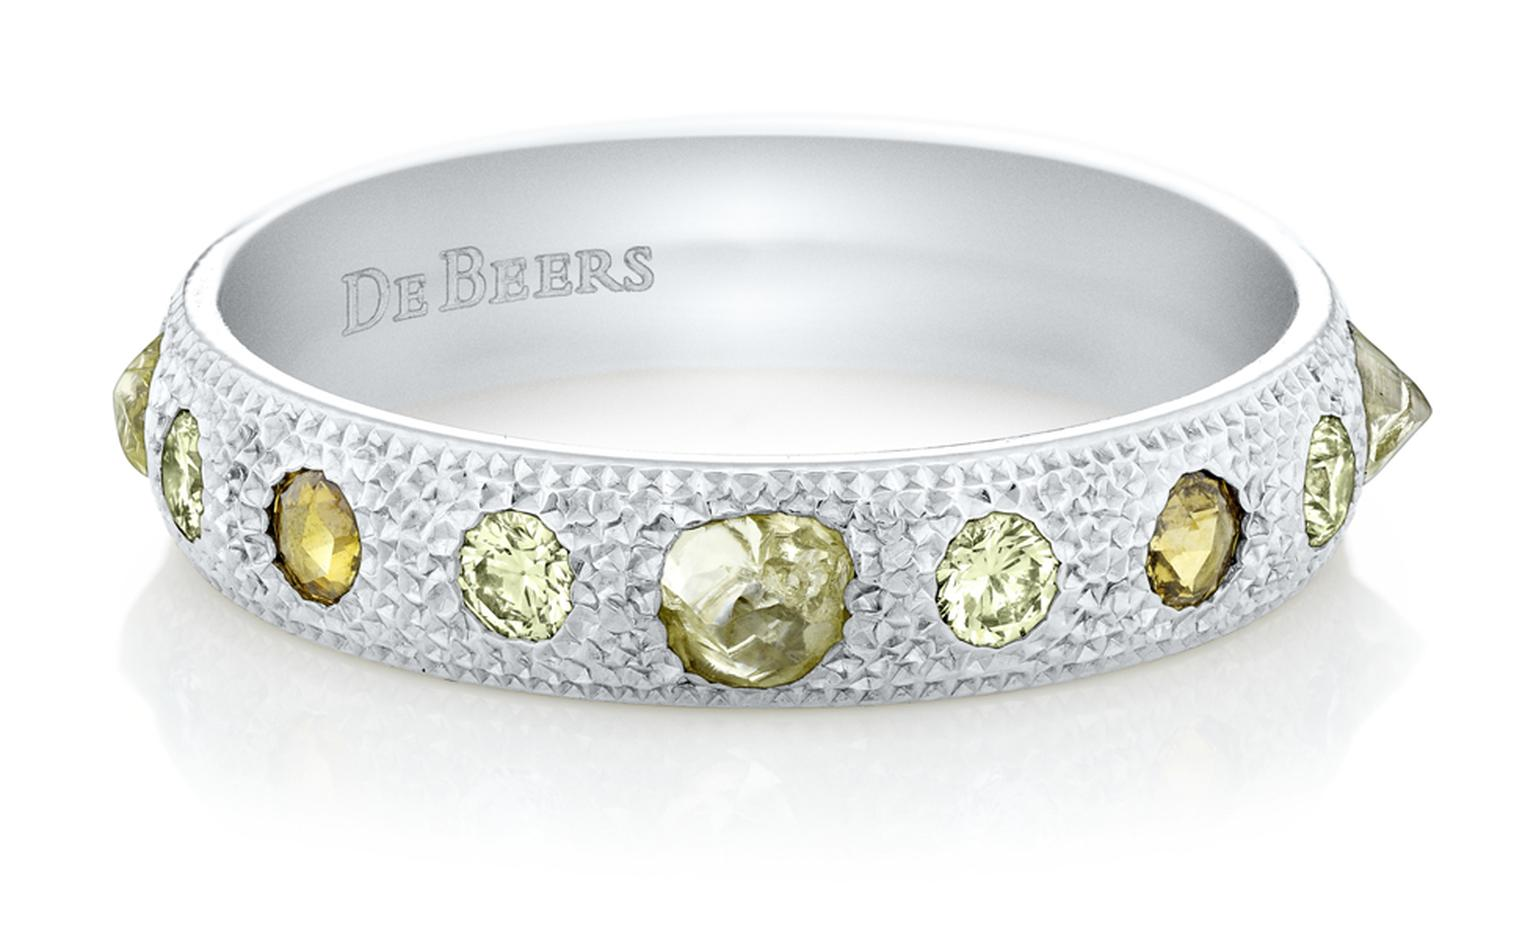 De Beers Talisman half band in White gold. £2,200